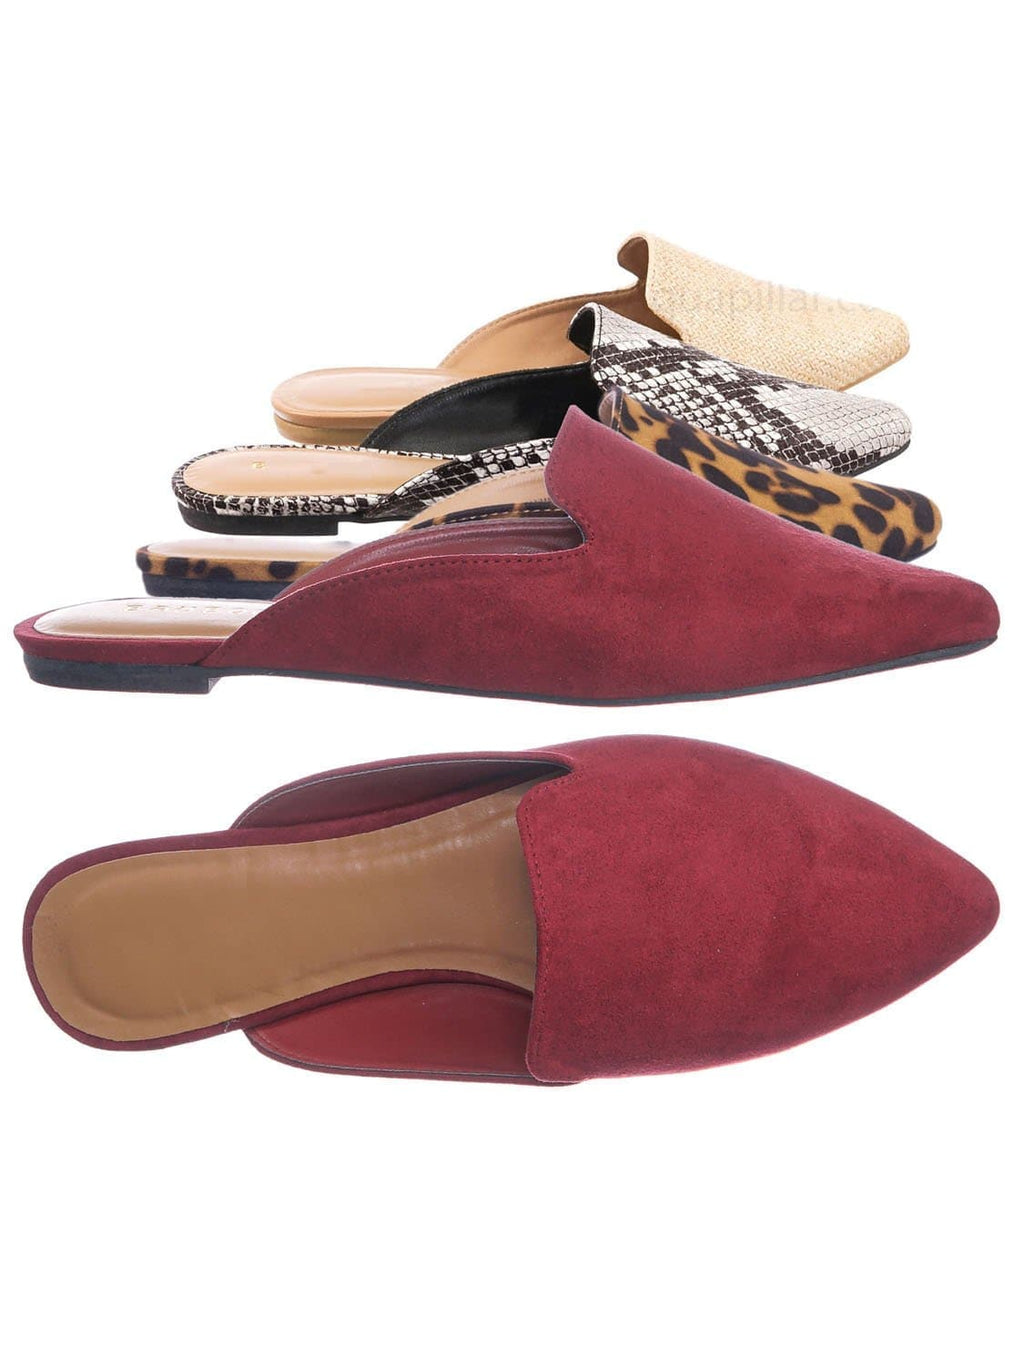 Wine Red / Blog44 Slip On Mule Slippers - Women Flat Backless Pointed Toe Pump